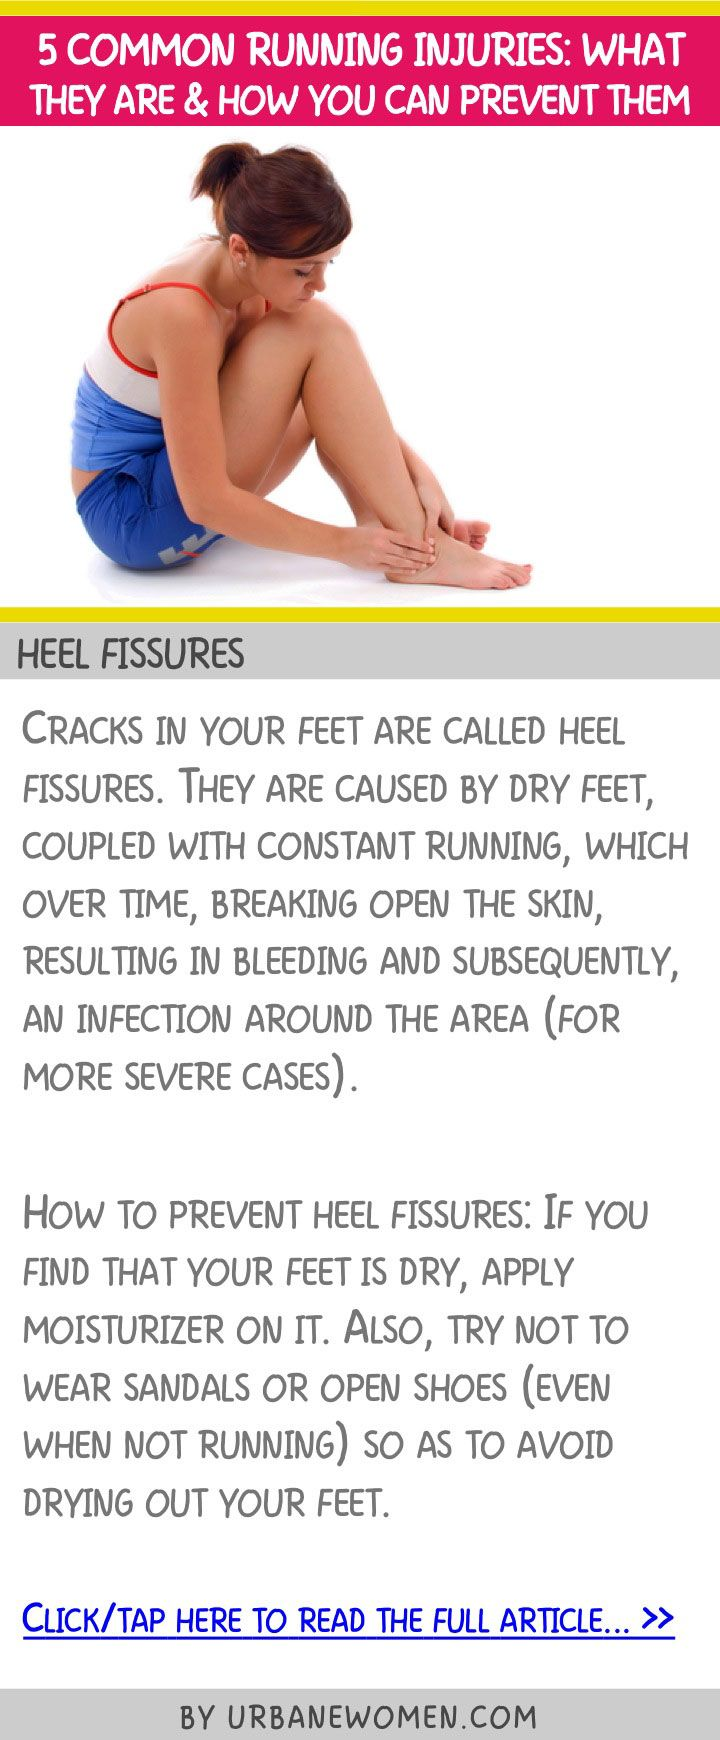 5 common running injuries: What they are and how you can prevent them - Heel fissures